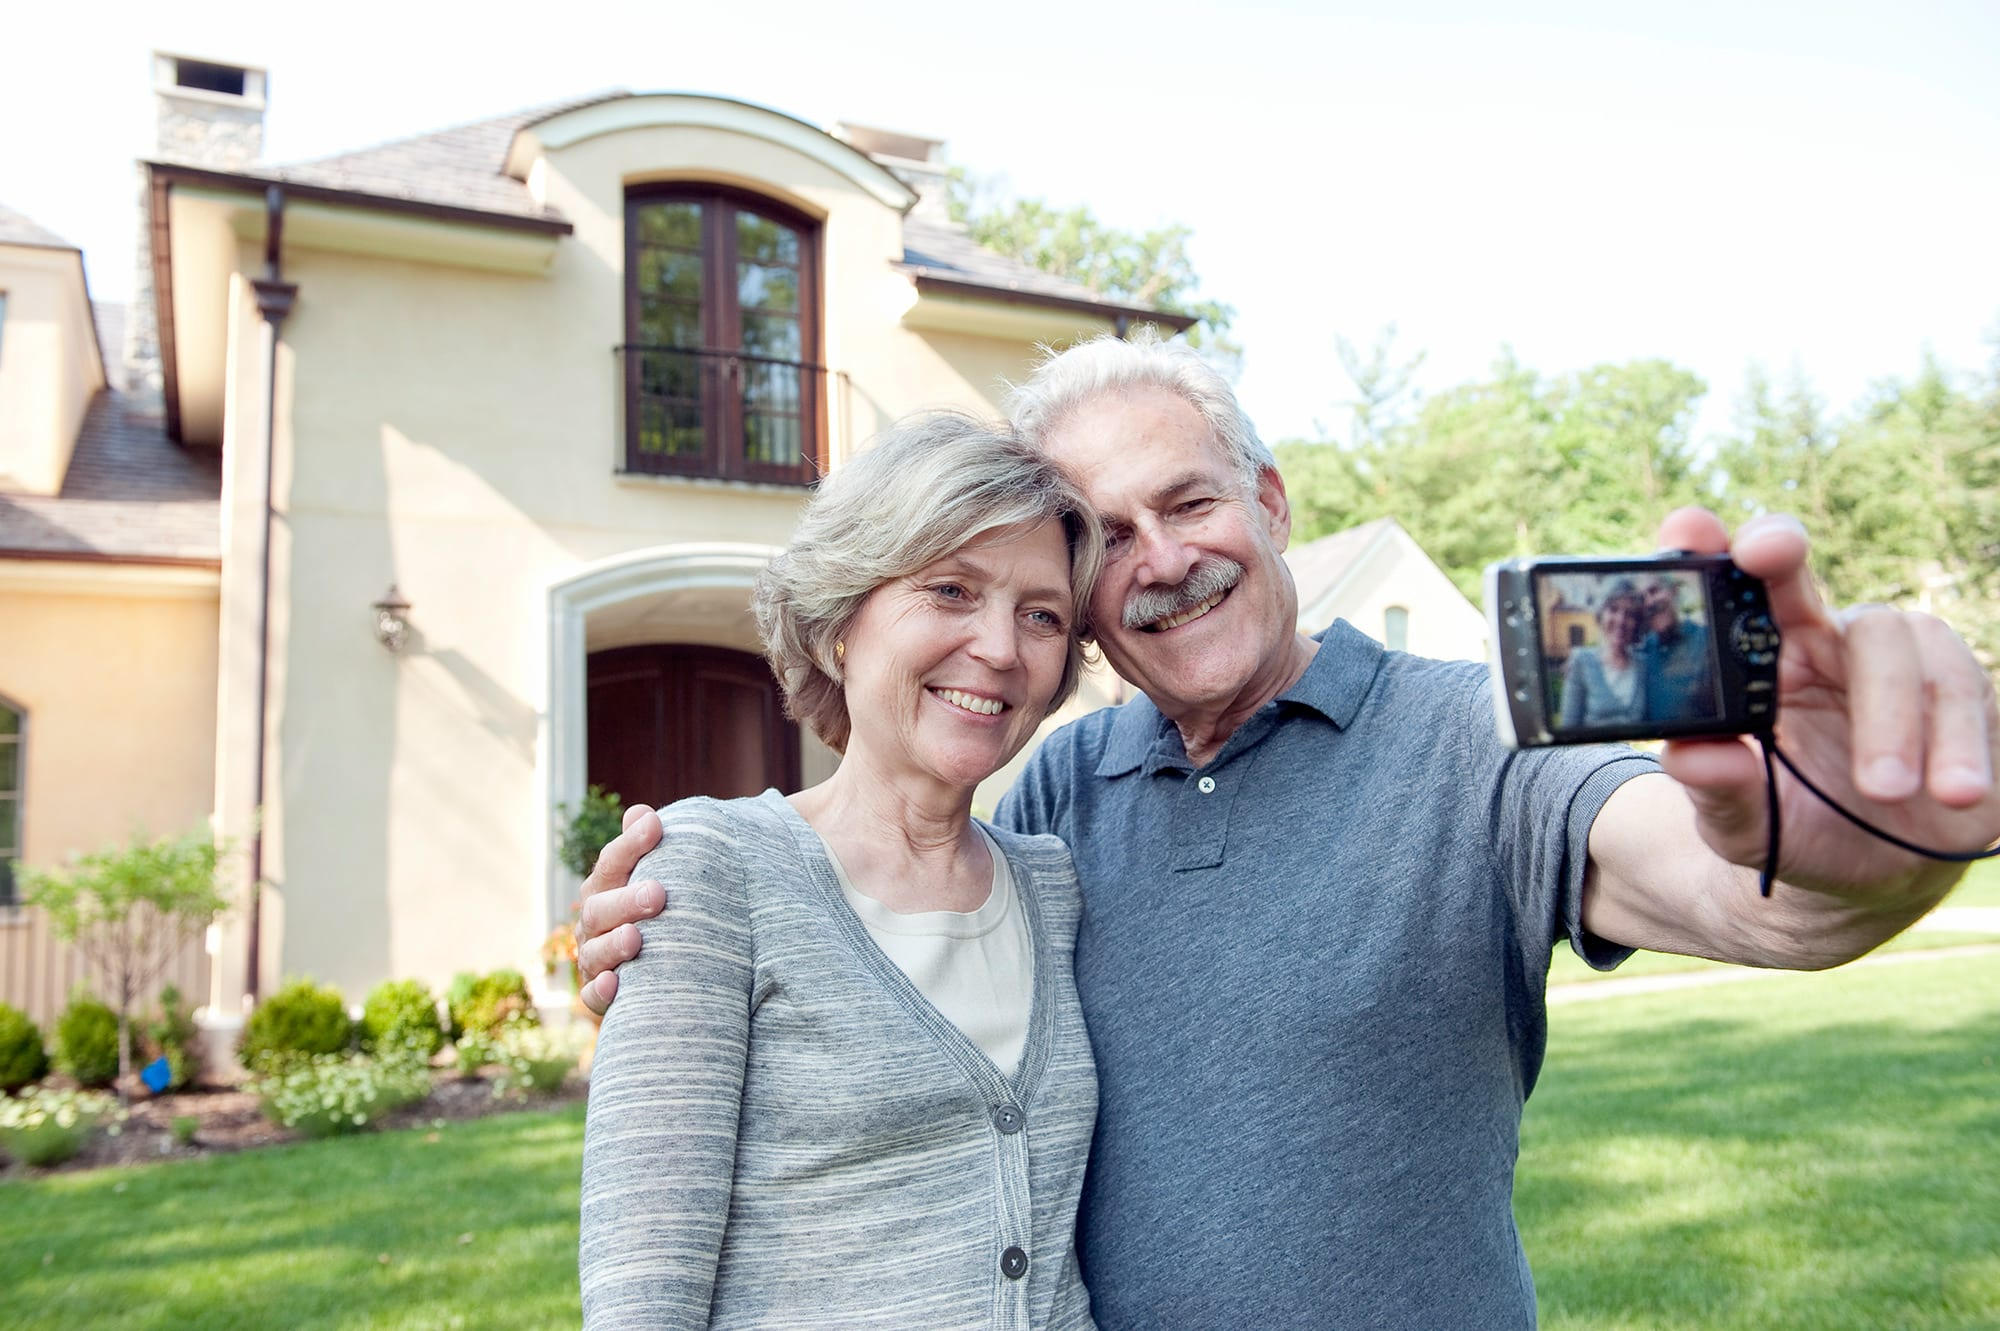 AARP survey results in boomer housing trends